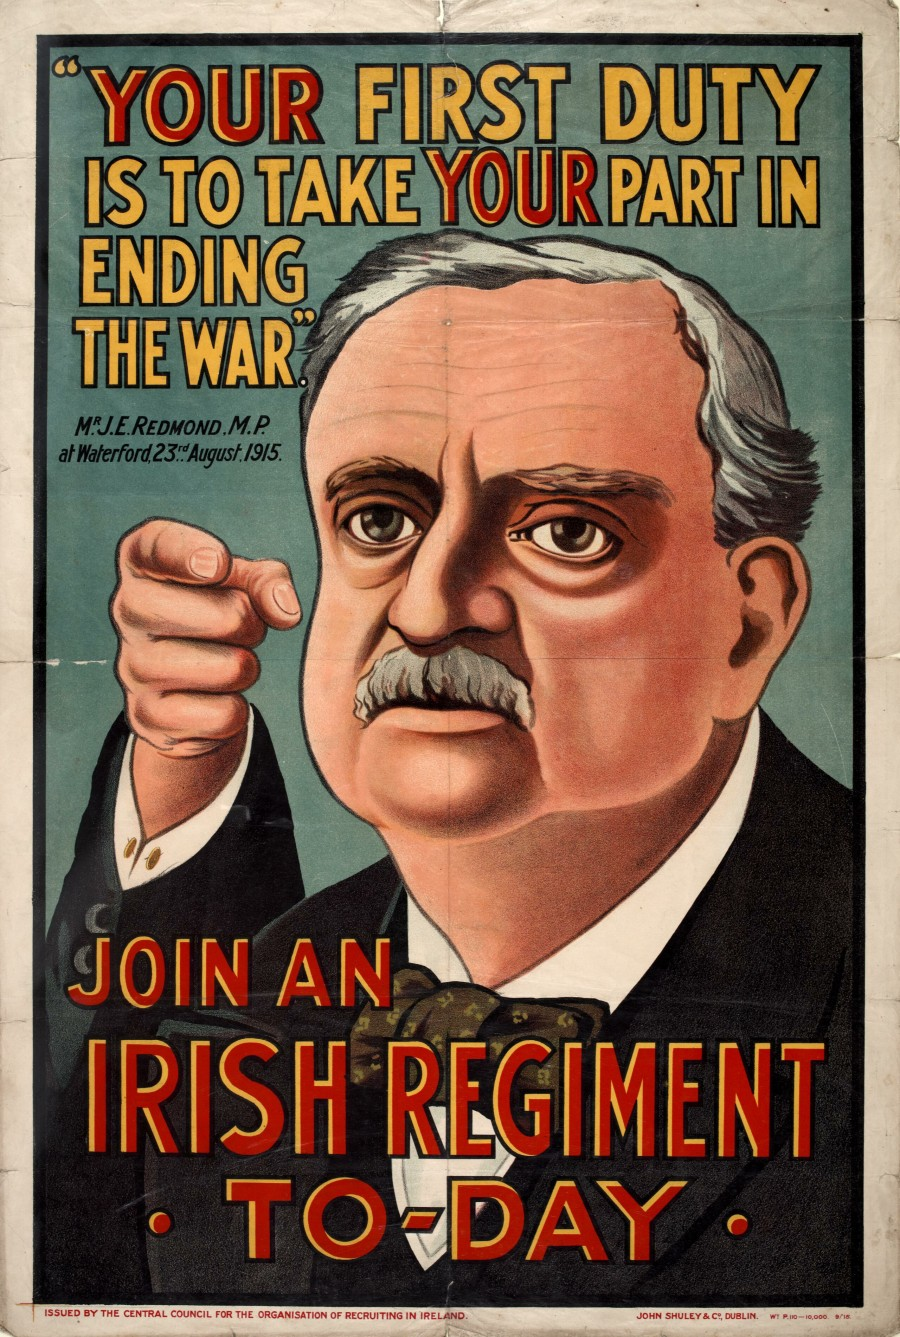 John Redmond British Army Recruitment Poster